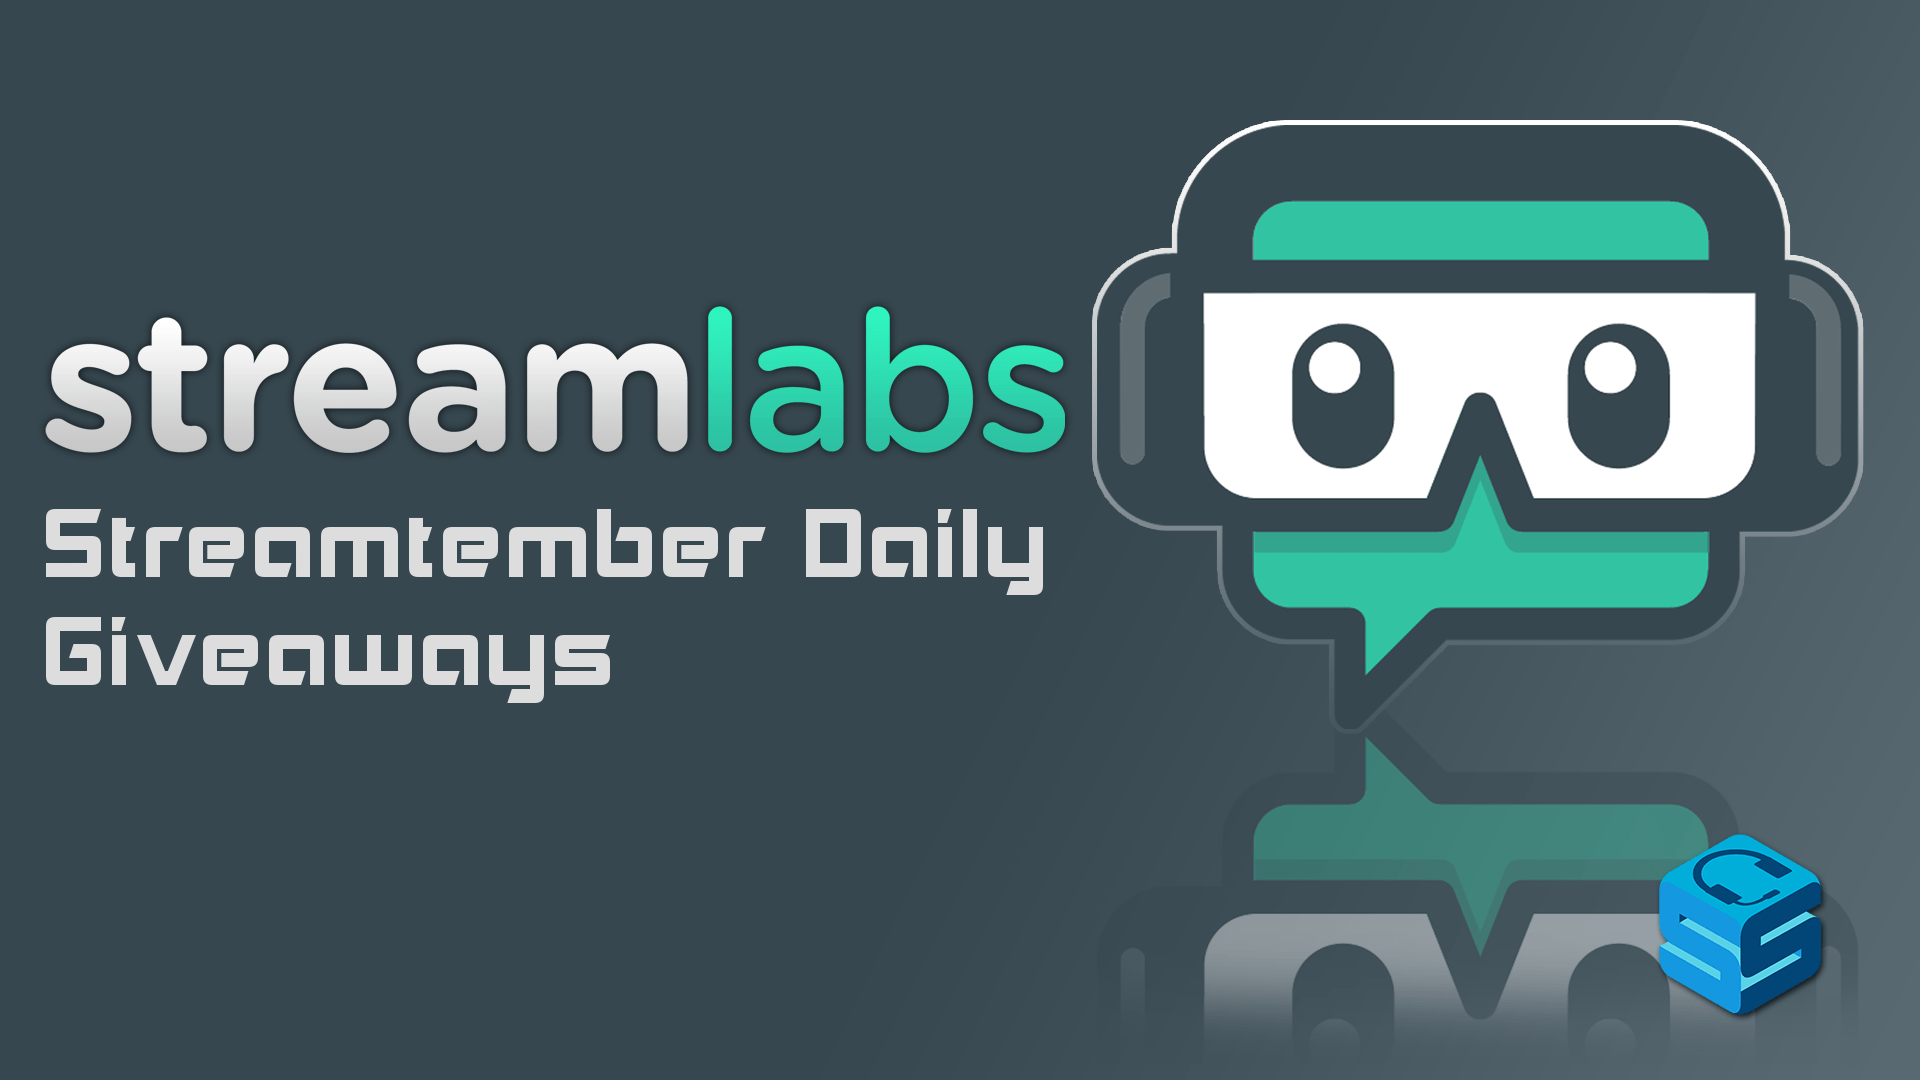 Streamlabs Starts 'Streamtember' Daily Giveaways